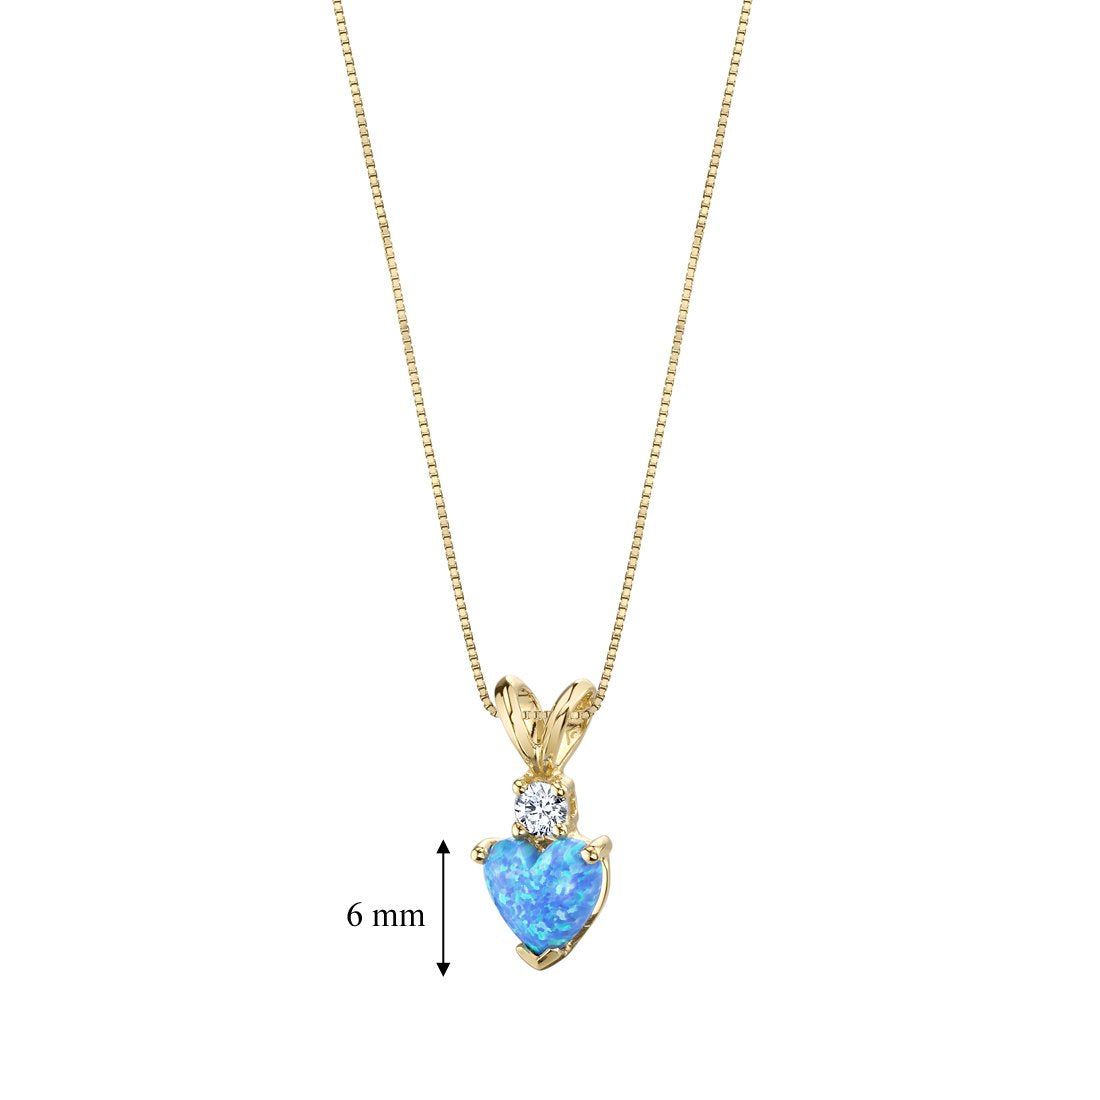 14 Karat Yellow Gold Heart Shape Created Blue Opal Diamond Pendant - wiihuu